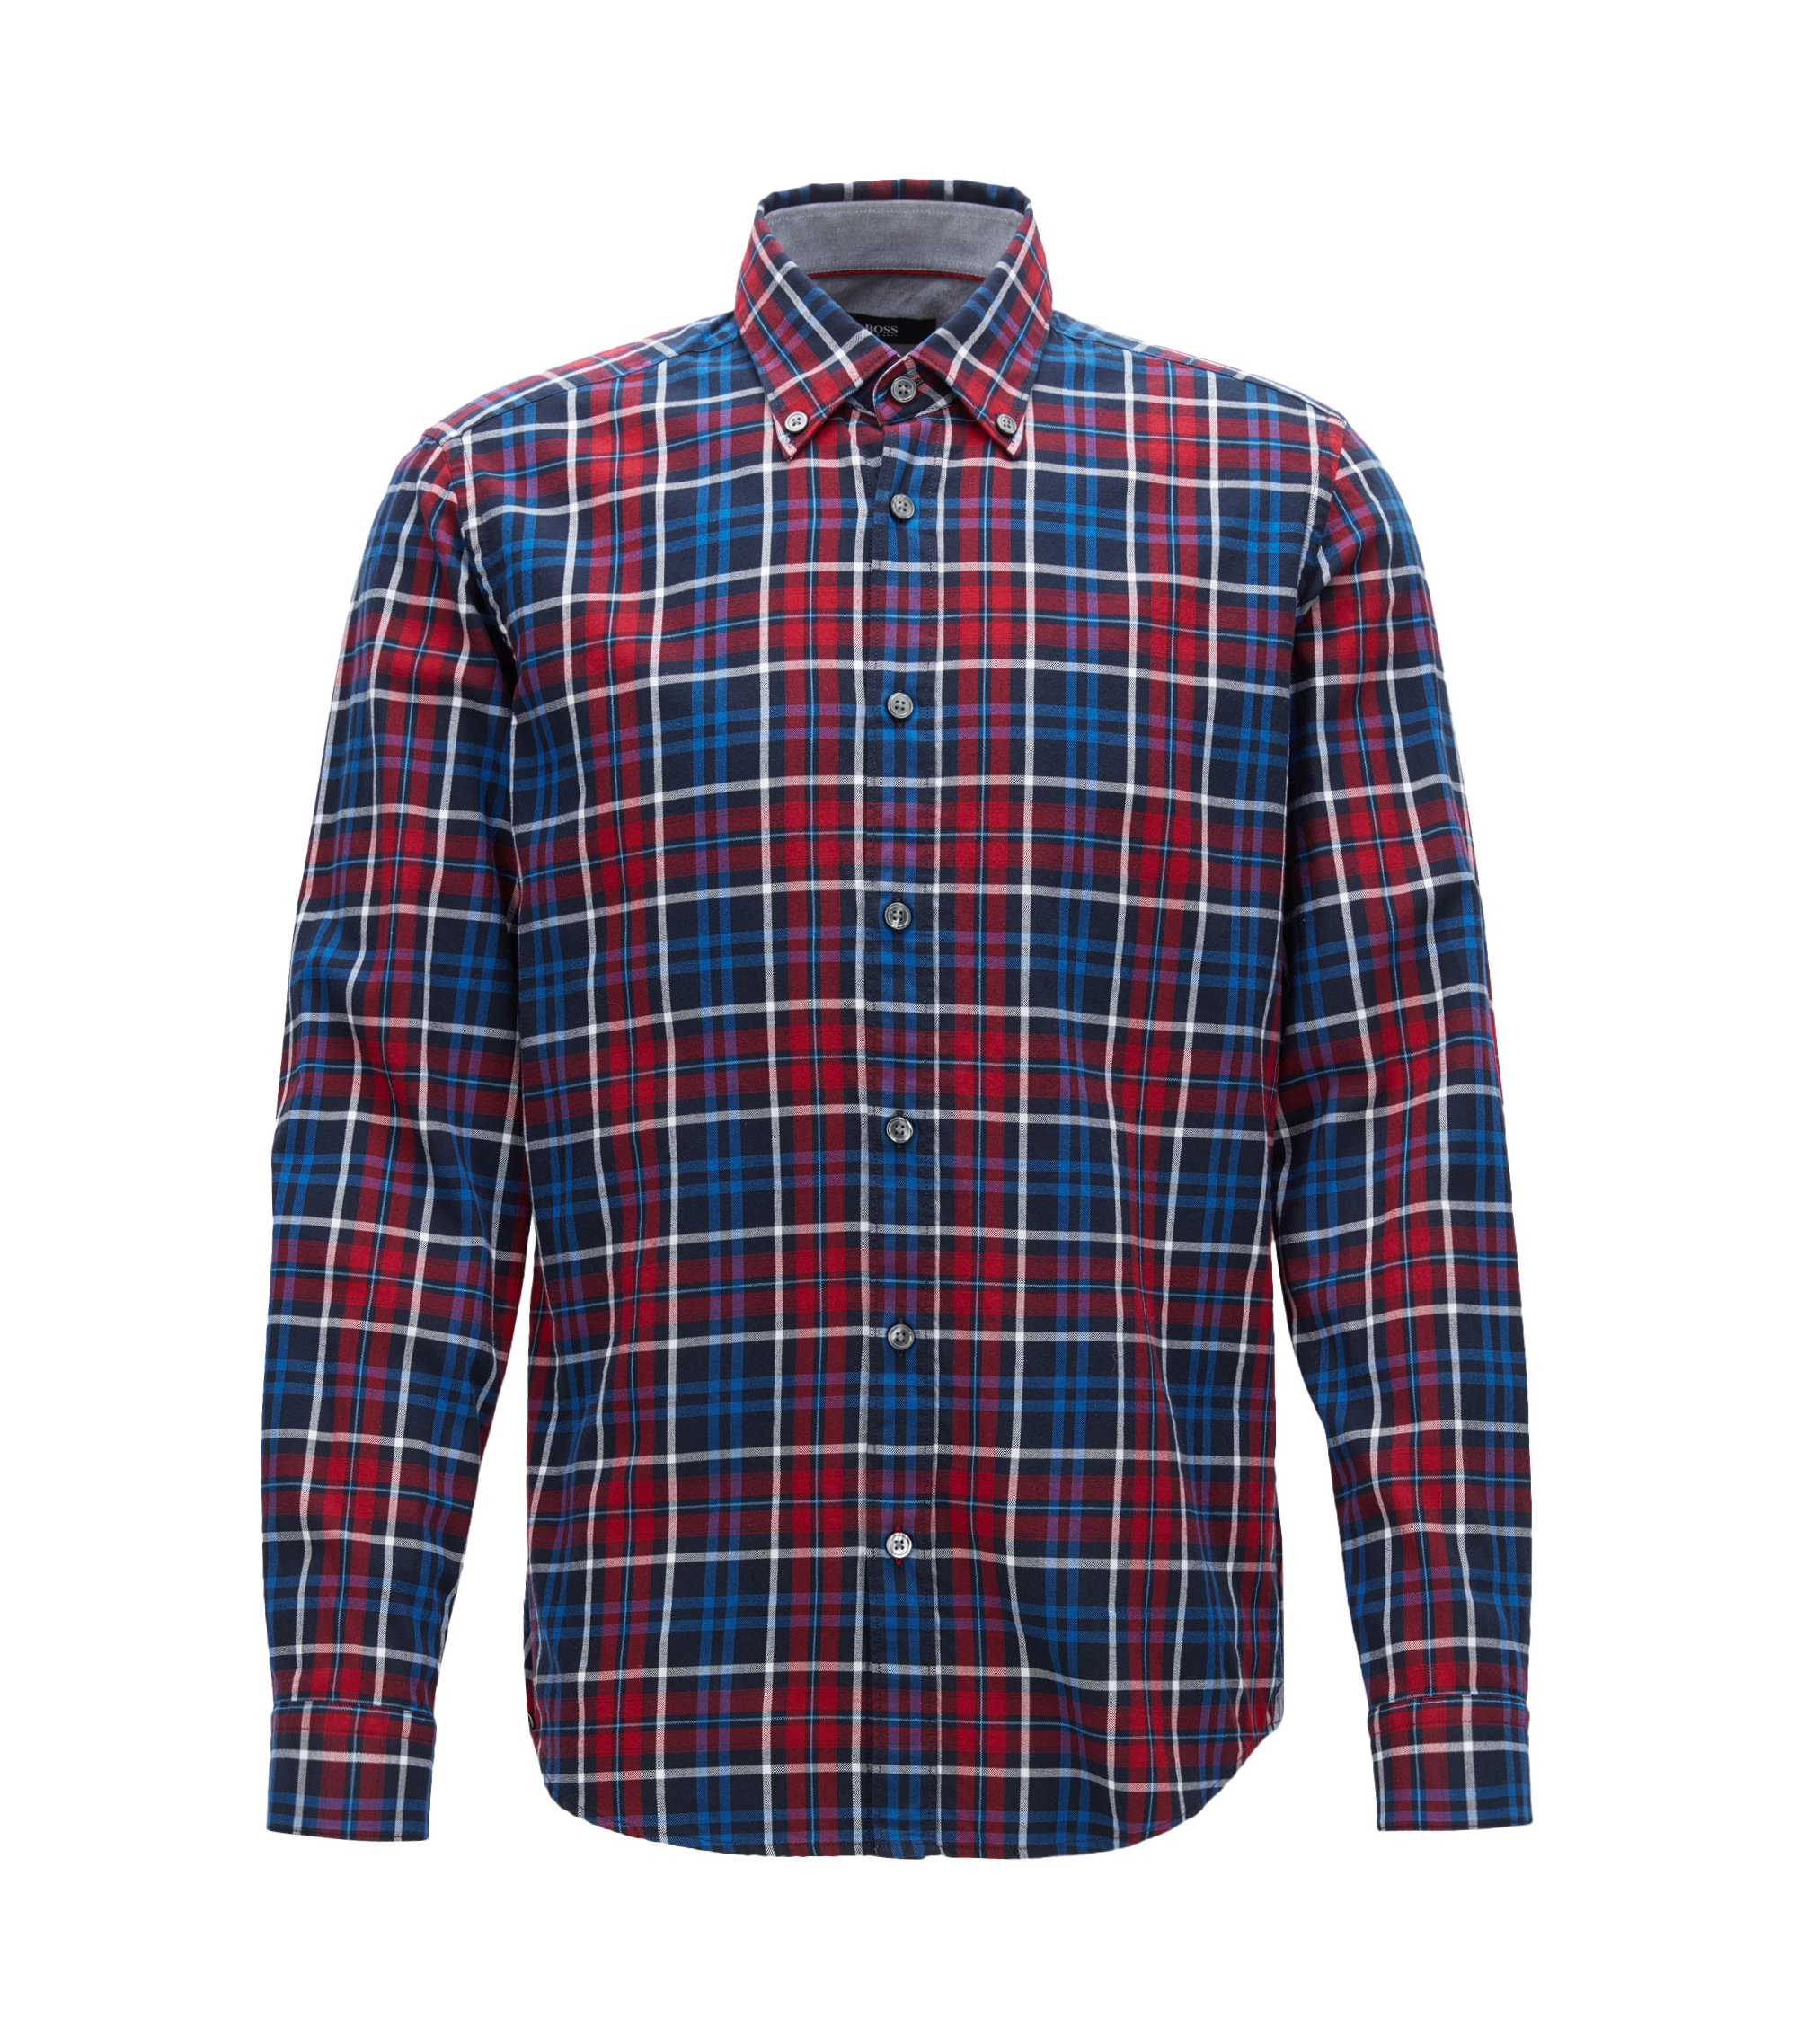 Plaid Cotton Button Down Shirt, Regular Fit | Lod, Red